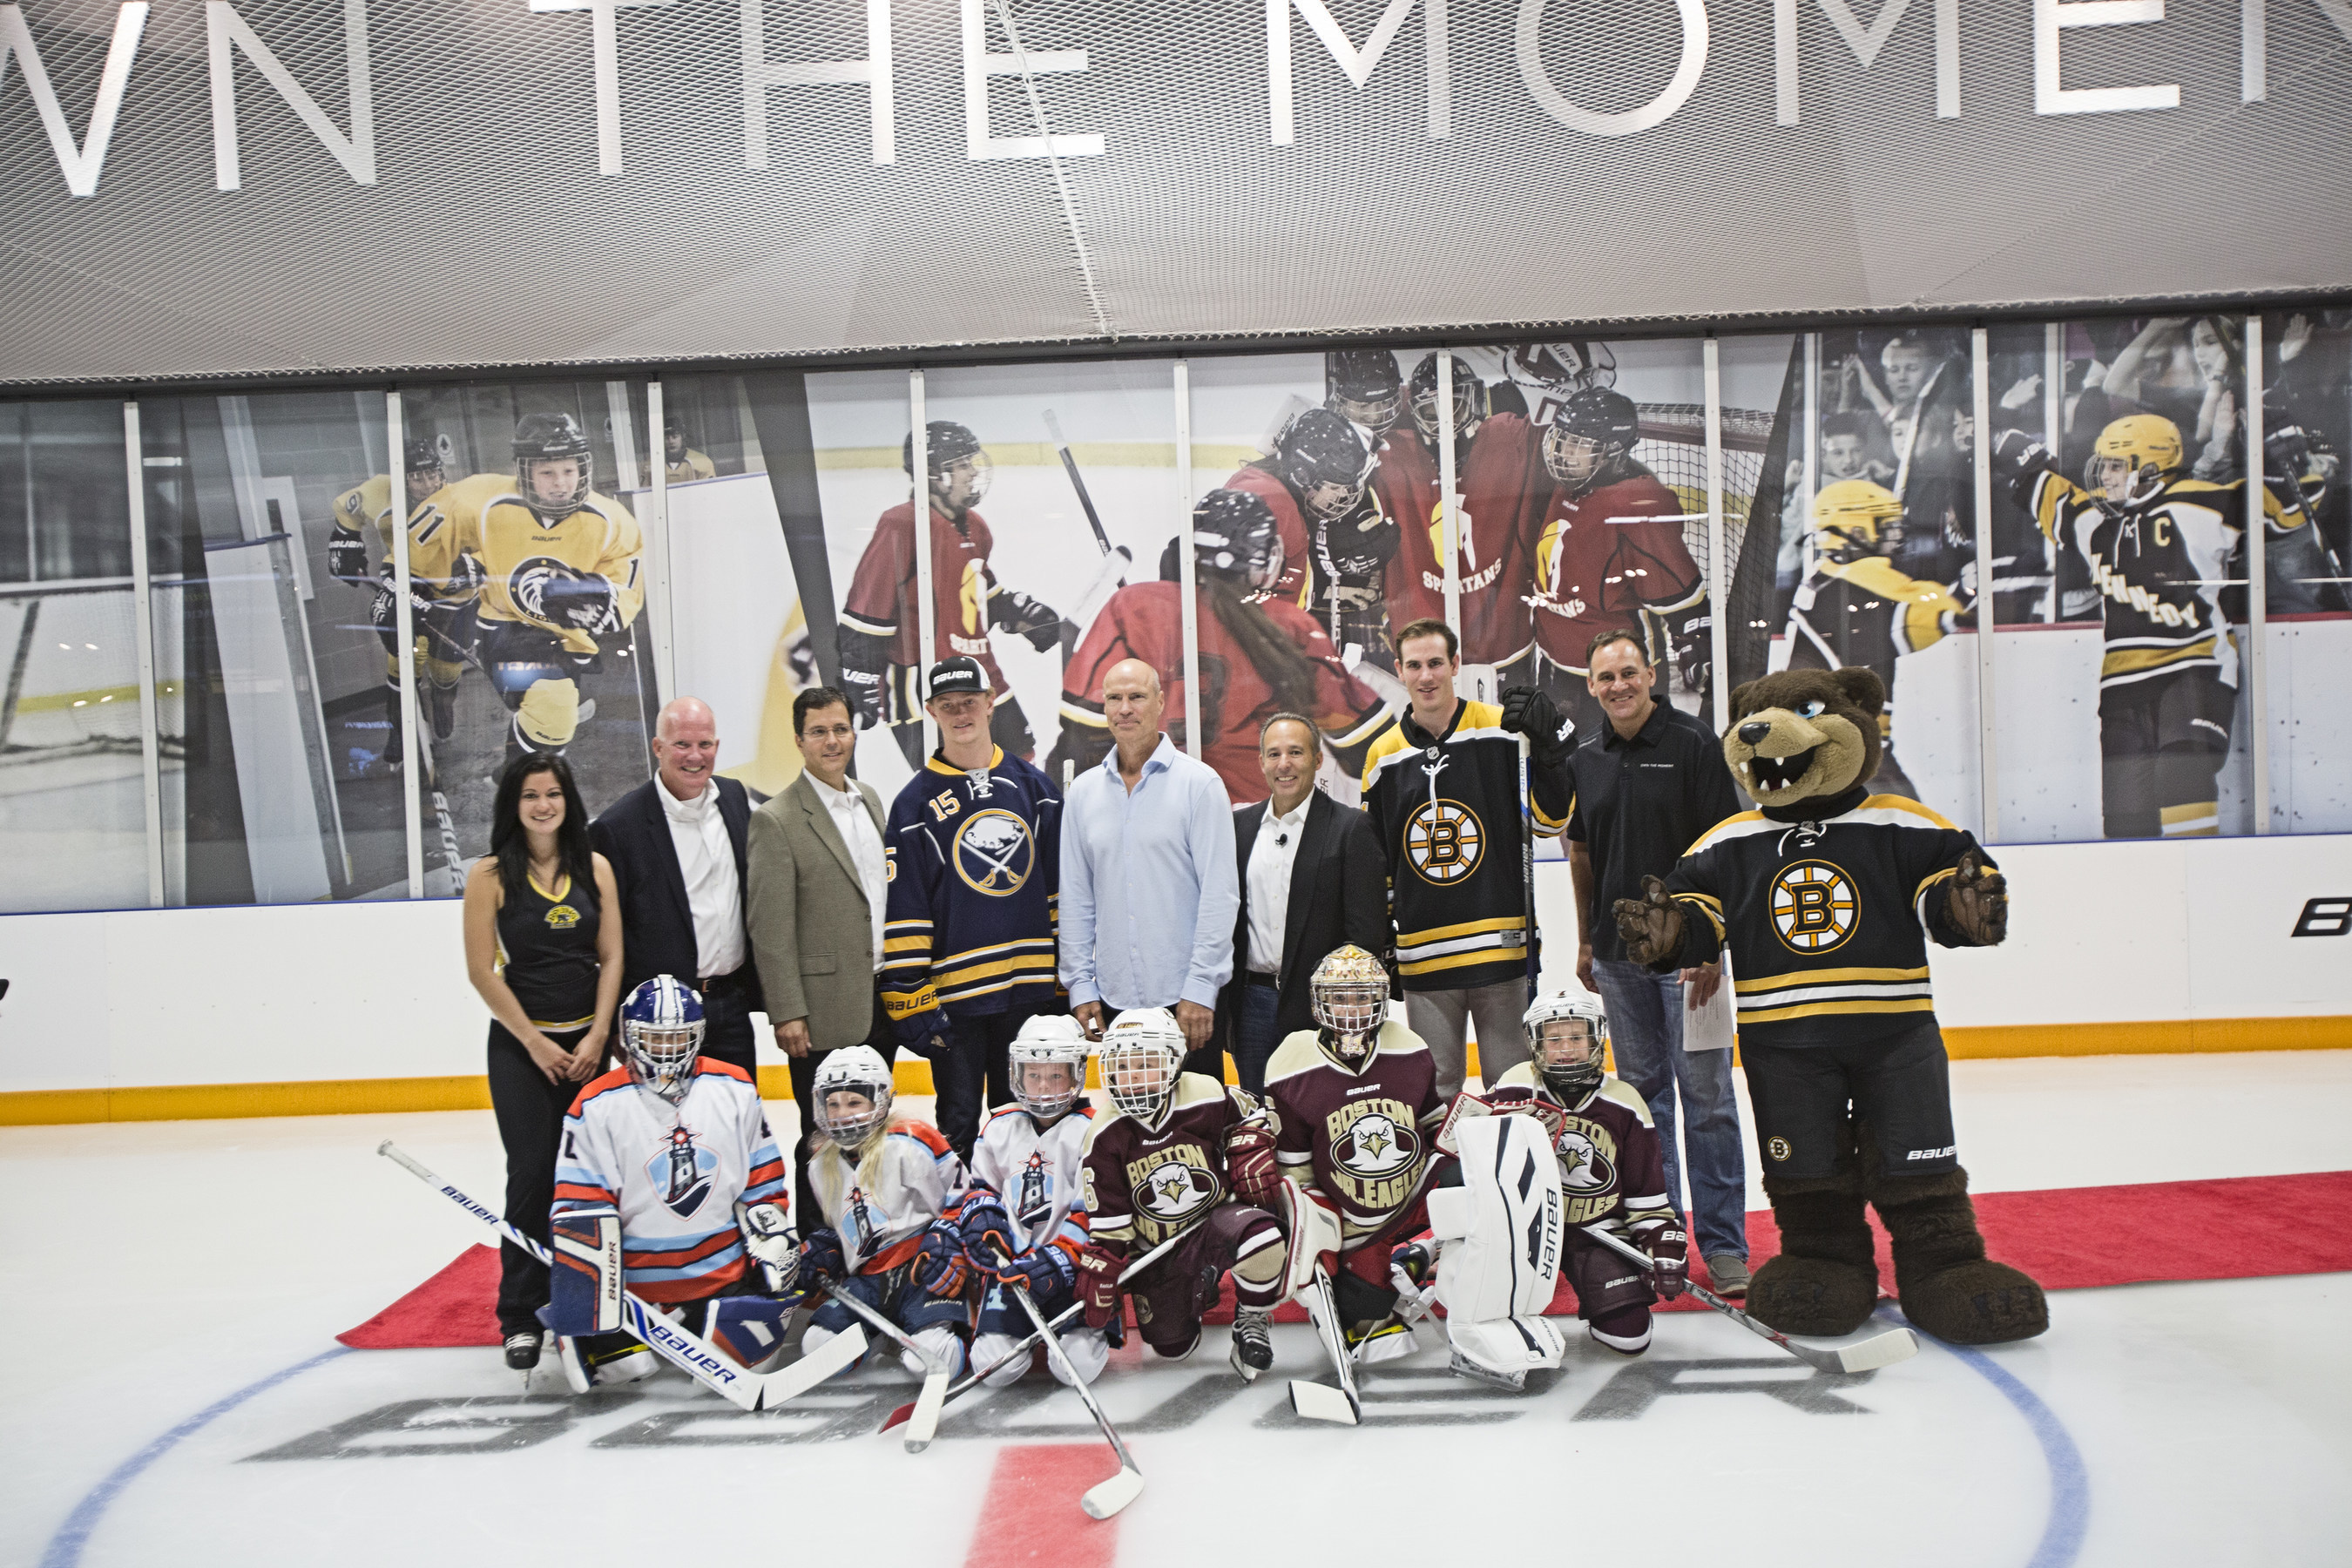 NHL legend Mark Messier was on hand with Bauer Hockey executives, Jack Eichel of the Buffalo Sabres and Jimmy Hayes of the Boston Bruins at the grand opening of the first-ever Bauer Hockey OWN THE MOMENT Hockey Experience, a premium retail store complete with a 2,500 square foot indoor ice rink